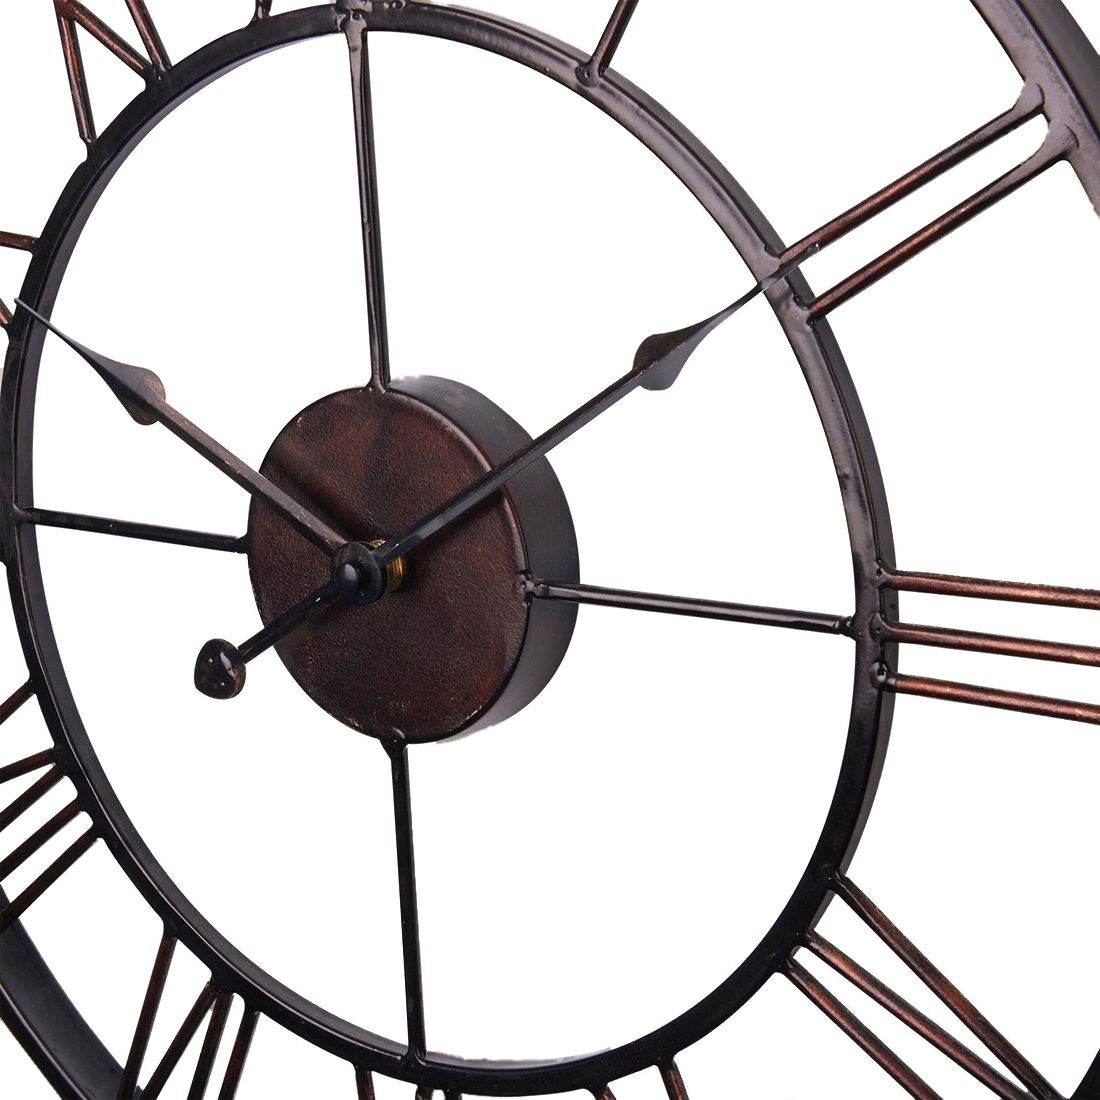 Lhbl Extra Large Vintage Style Statement Metal Wall Clock Country Chocolate Color In Clocks From Home Garden On Aliexpress Alibaba Group